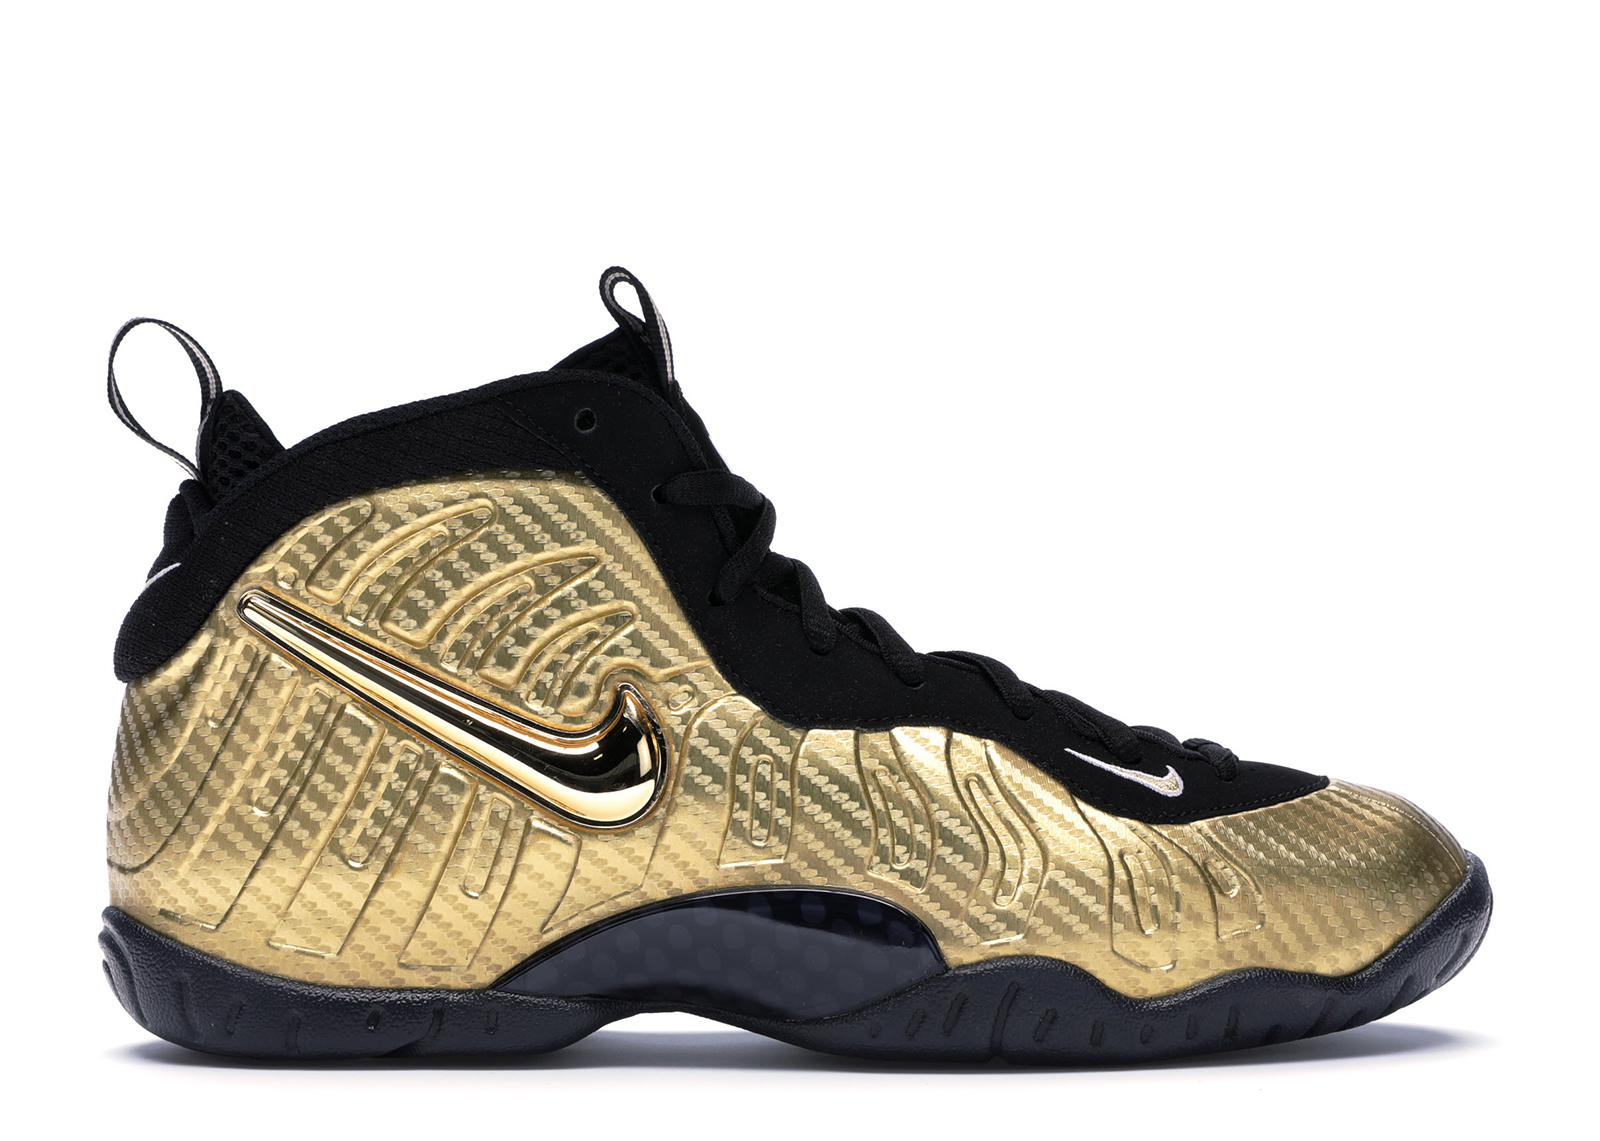 save off 1cb04 cb05e release date air nike foamposite pro metallic gold gs 644792 701 0c9d6 7a3ab